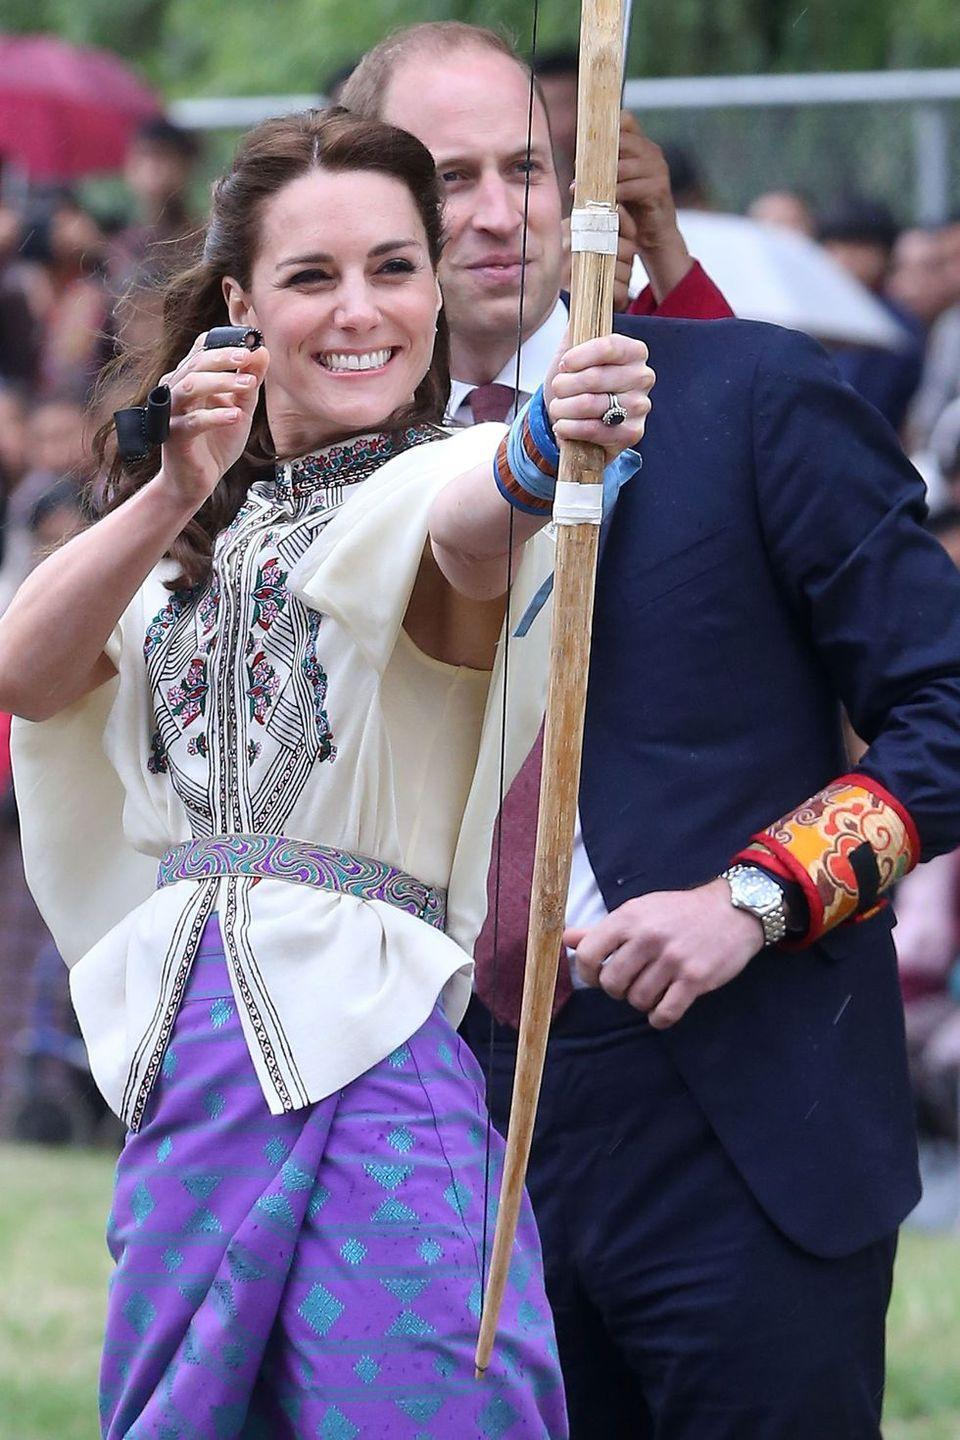 "<p>Go Kate go! The Duchess takes a shot at archery in Thimphu, <a href=""https://www.harpersbazaar.com/celebrity/latest/g7102/kate-middleton-india-bhutan-royal-visit/"" rel=""nofollow noopener"" target=""_blank"" data-ylk=""slk:Bhutan"" class=""link rapid-noclick-resp"">Bhutan</a>. </p>"